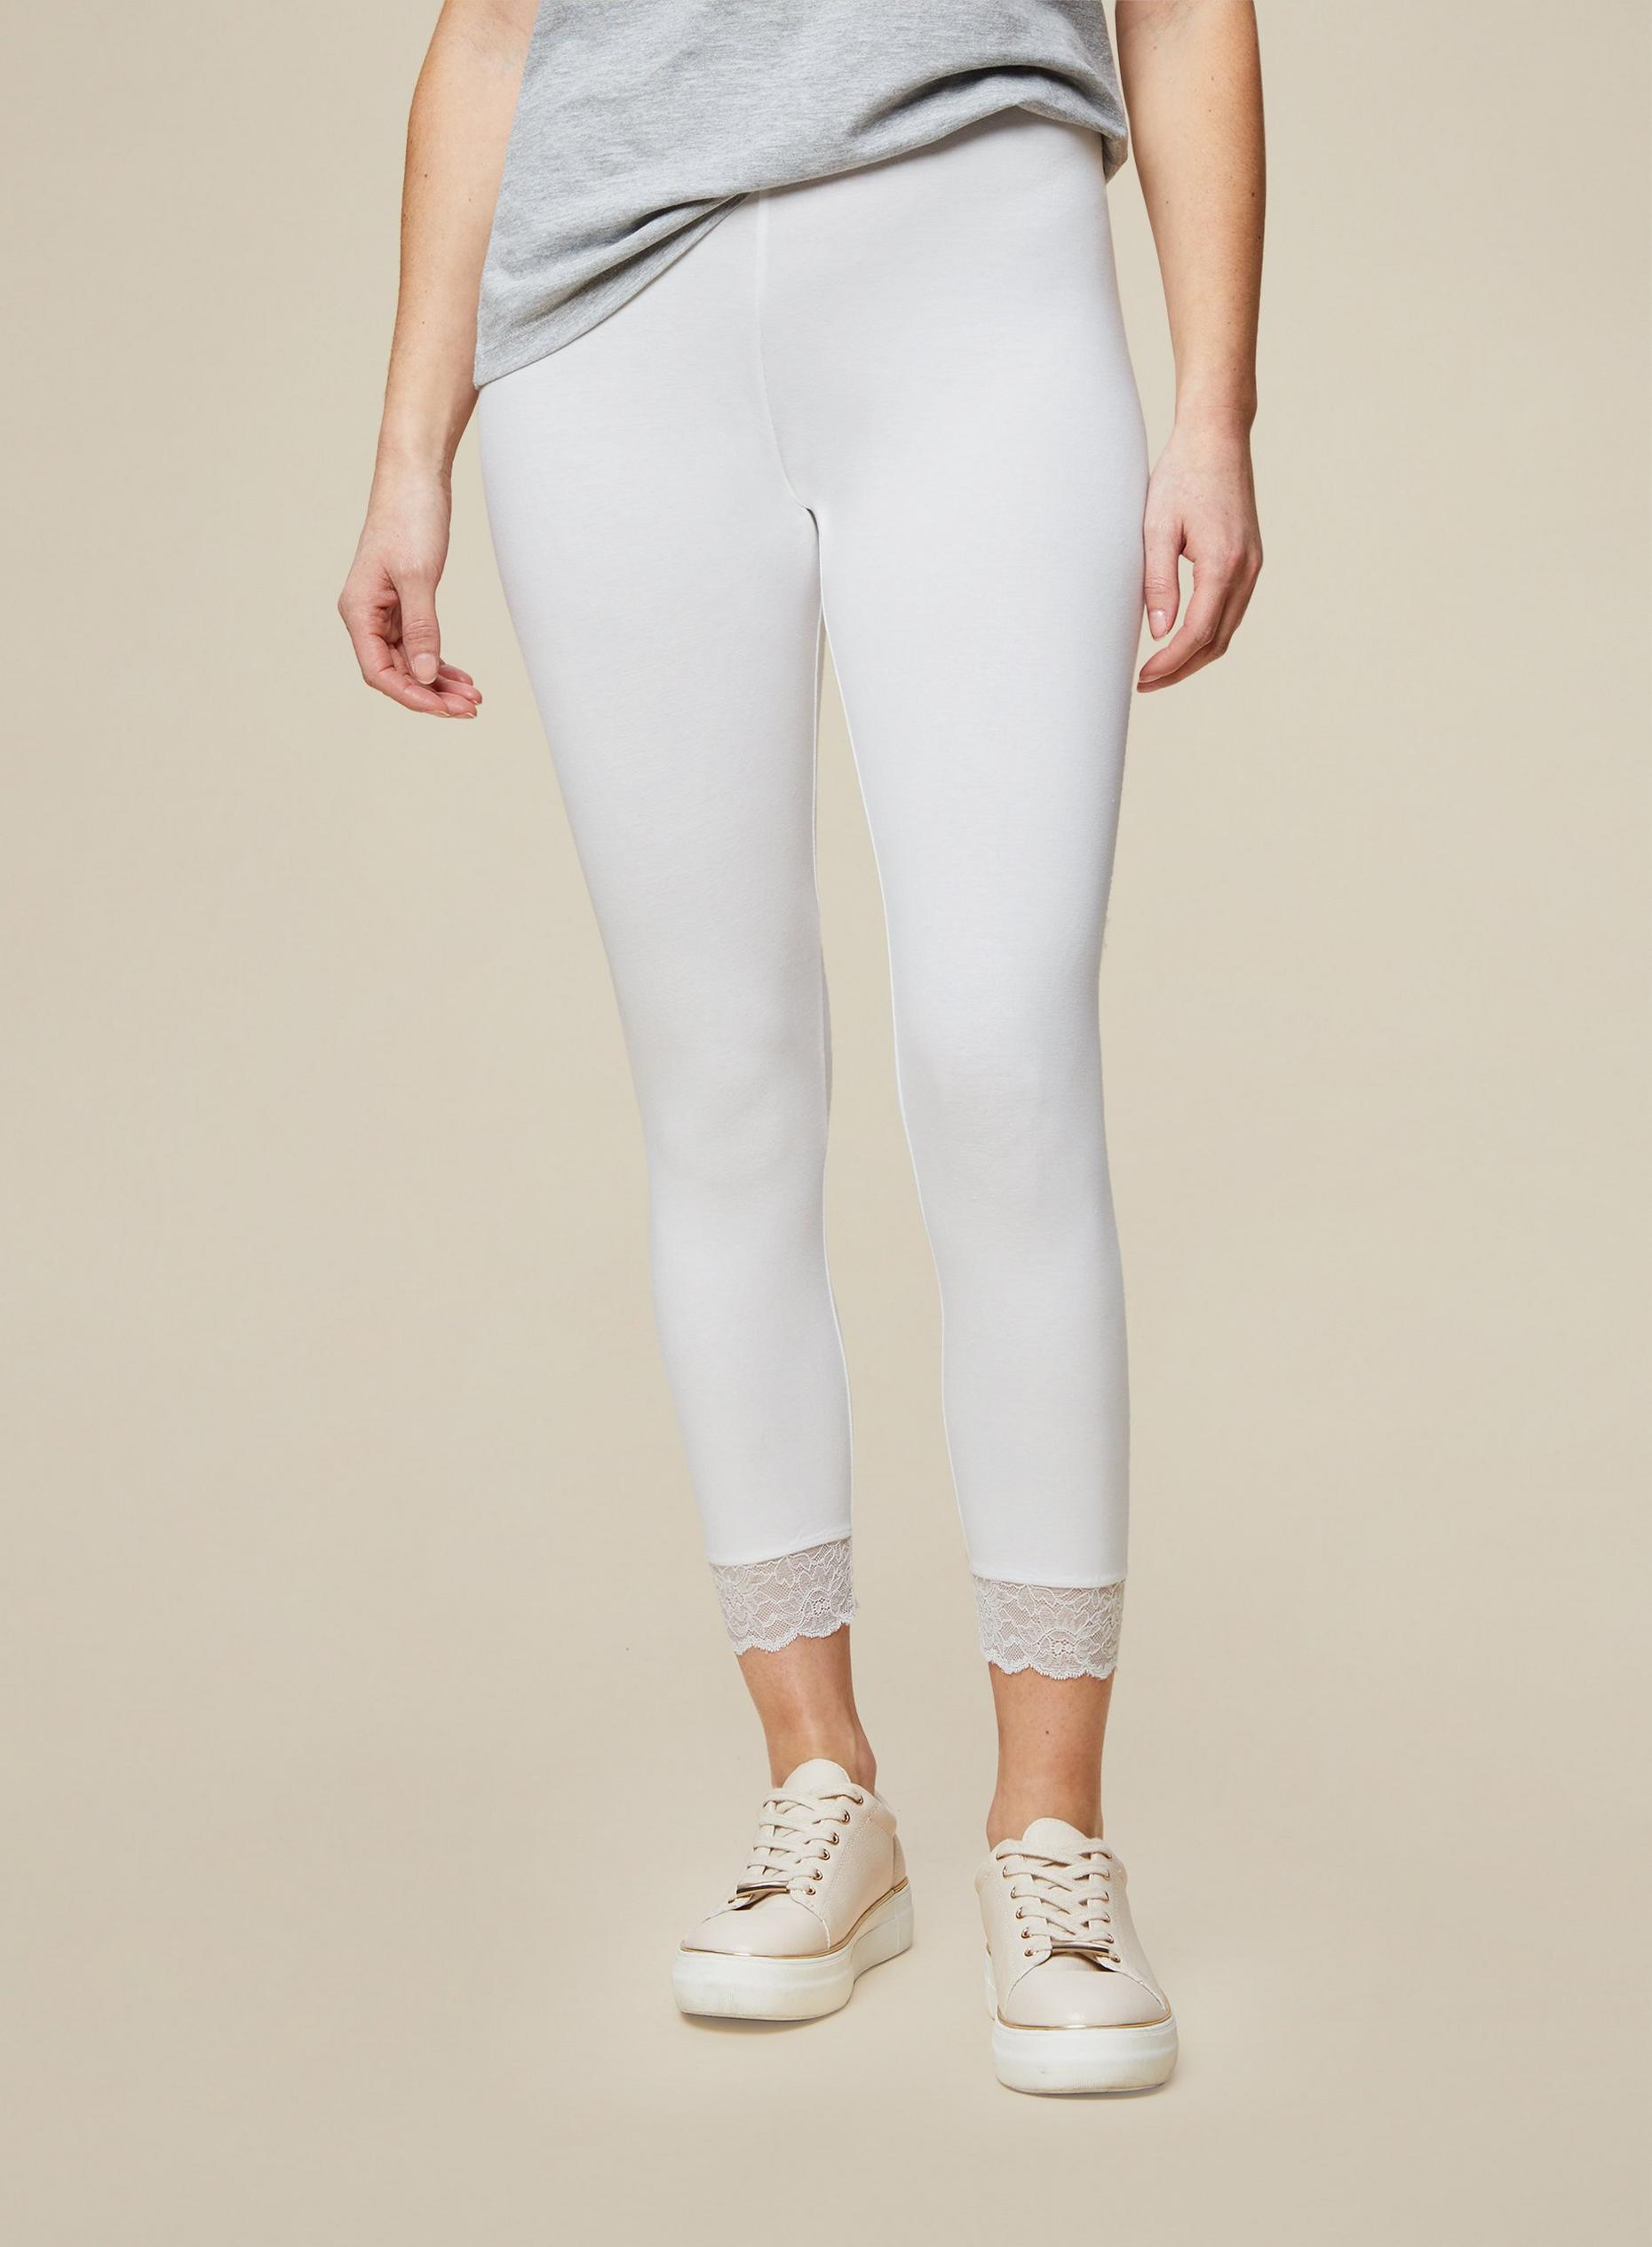 Organic White Lace Trim Cropped Legging